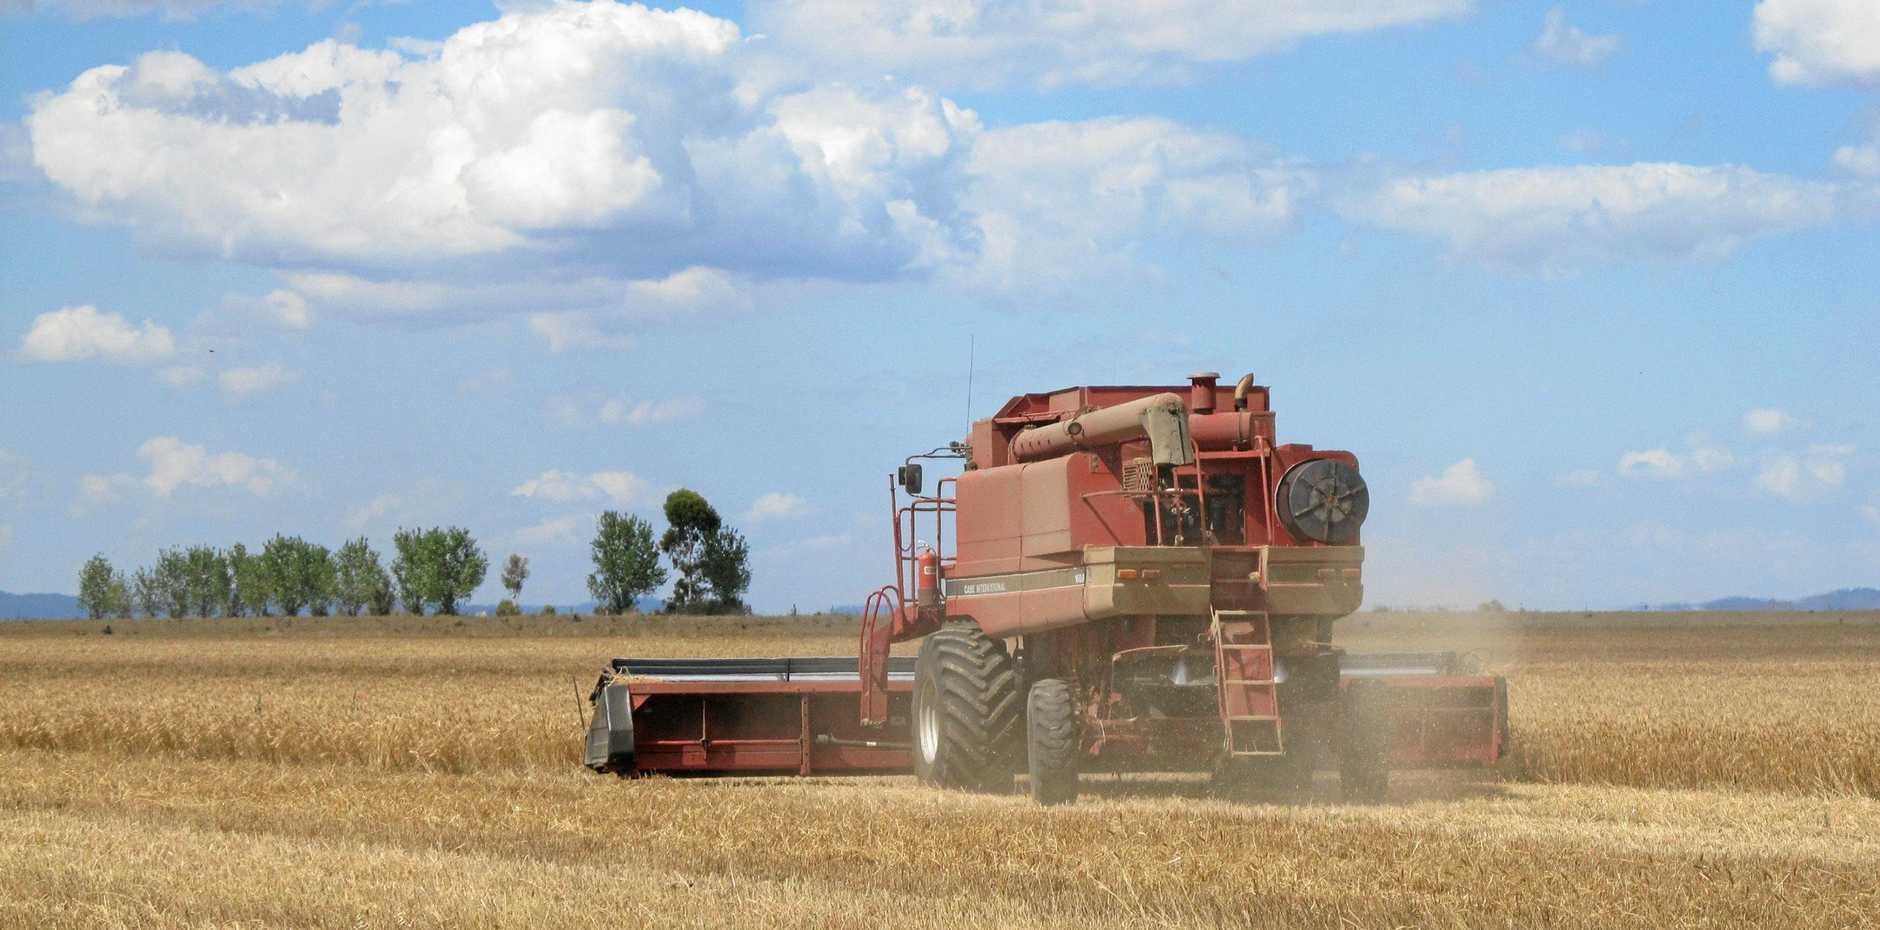 HARVEST: Rain will help Southern Downs farmers get out of hard financial times, but surviving drought in the future will require a new approach to financing.